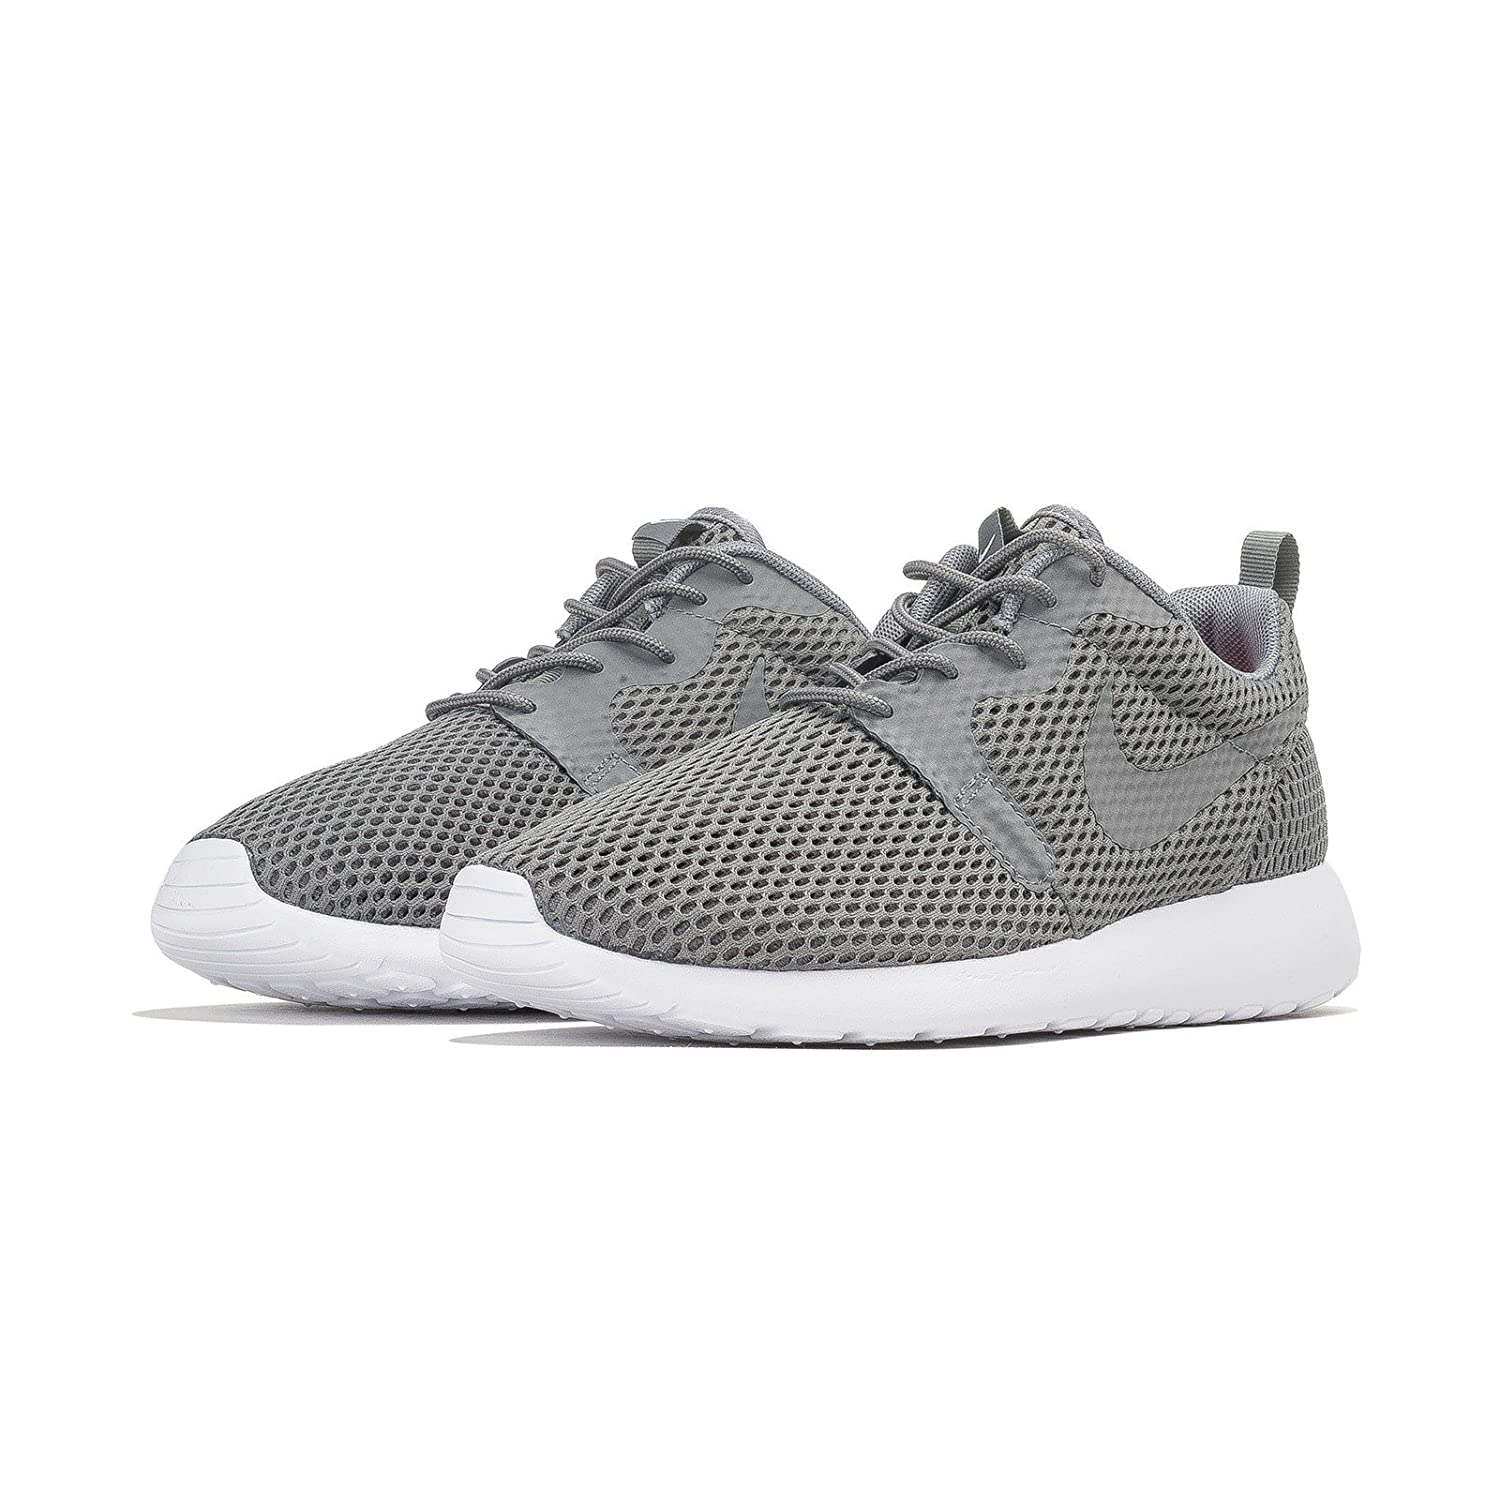 338847a518b0 Nike Roshe One HYP Br-833125-002 (10. 5 M)  Buy Online at Low Prices in  India - Amazon.in